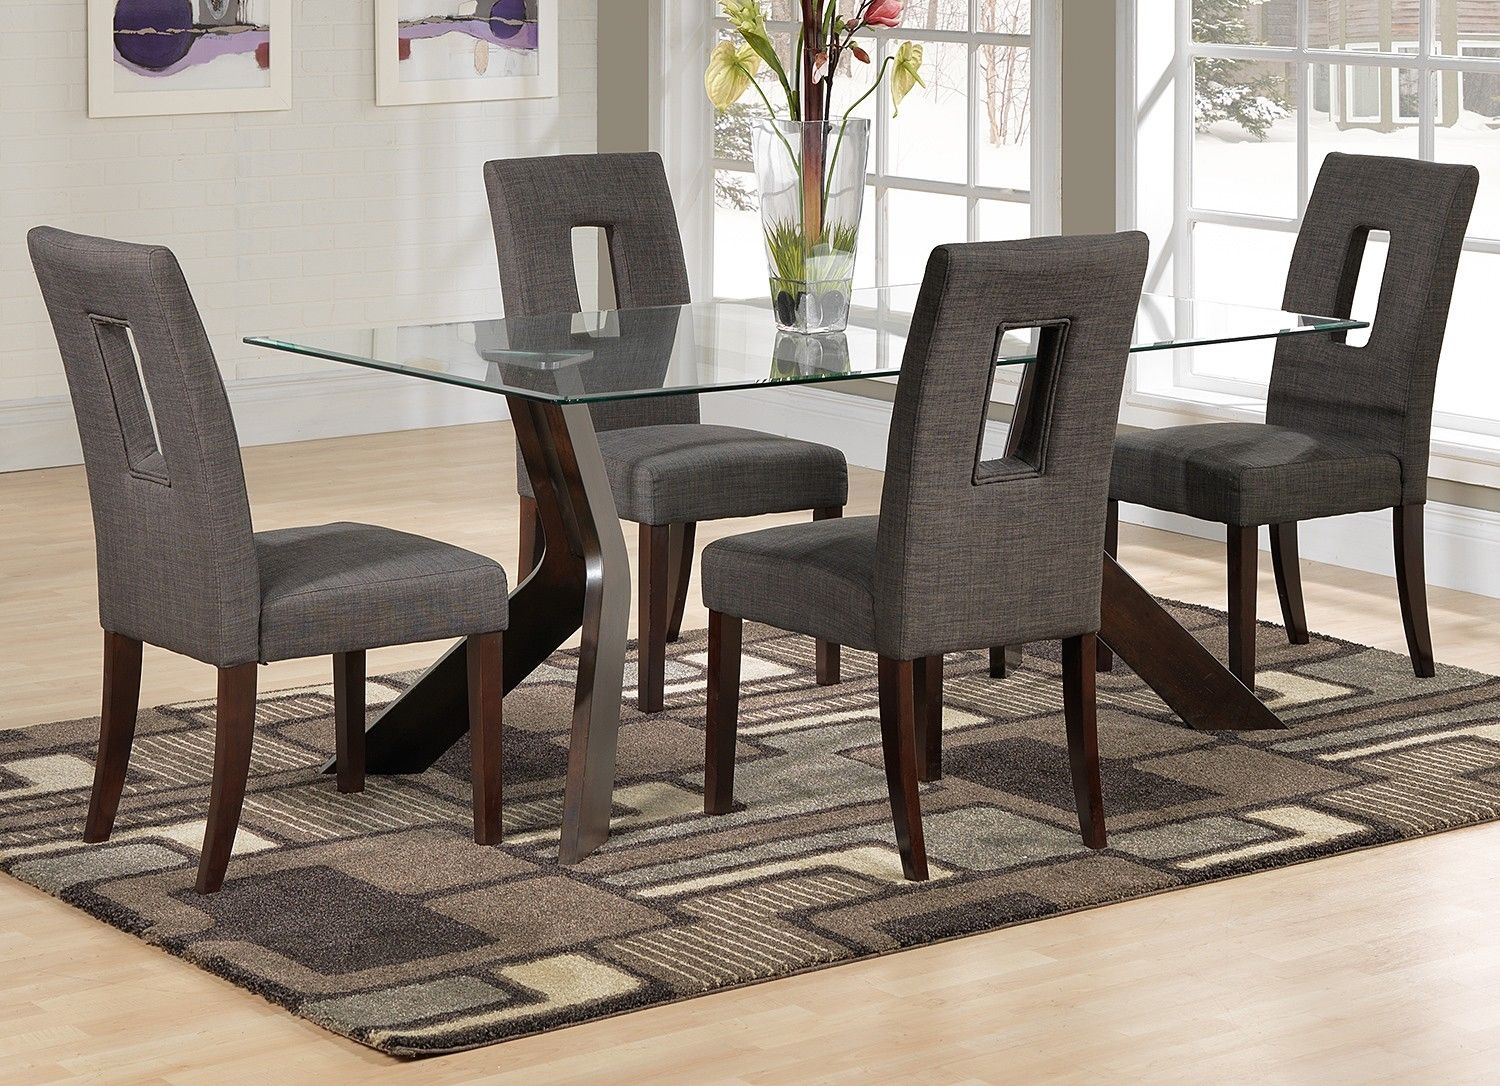 Nolan casual dining 5 pc dinette leons glass furniture nolan casual dining 5 pc dinette leons workwithnaturefo